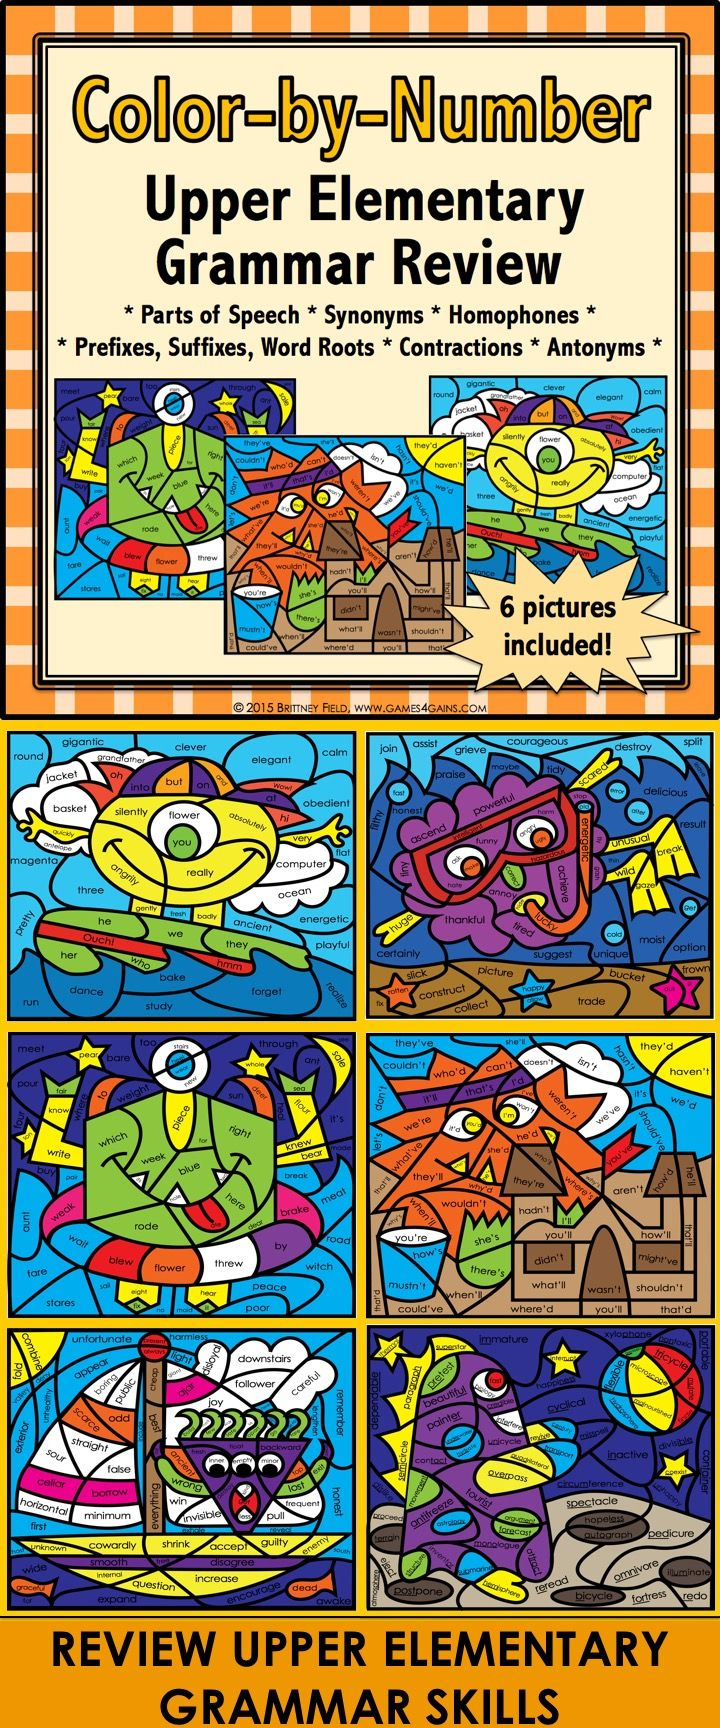 This Grammar Review Color-by-Number Activities set comes with 6 color-by-number activities for upper elementary for reviewing and practicing the following skills: parts of speech, synonyms, homophones, prefixes, suffixes, root words, contractions, and antonyms. This is a fun way to get in some additional grammar practice!